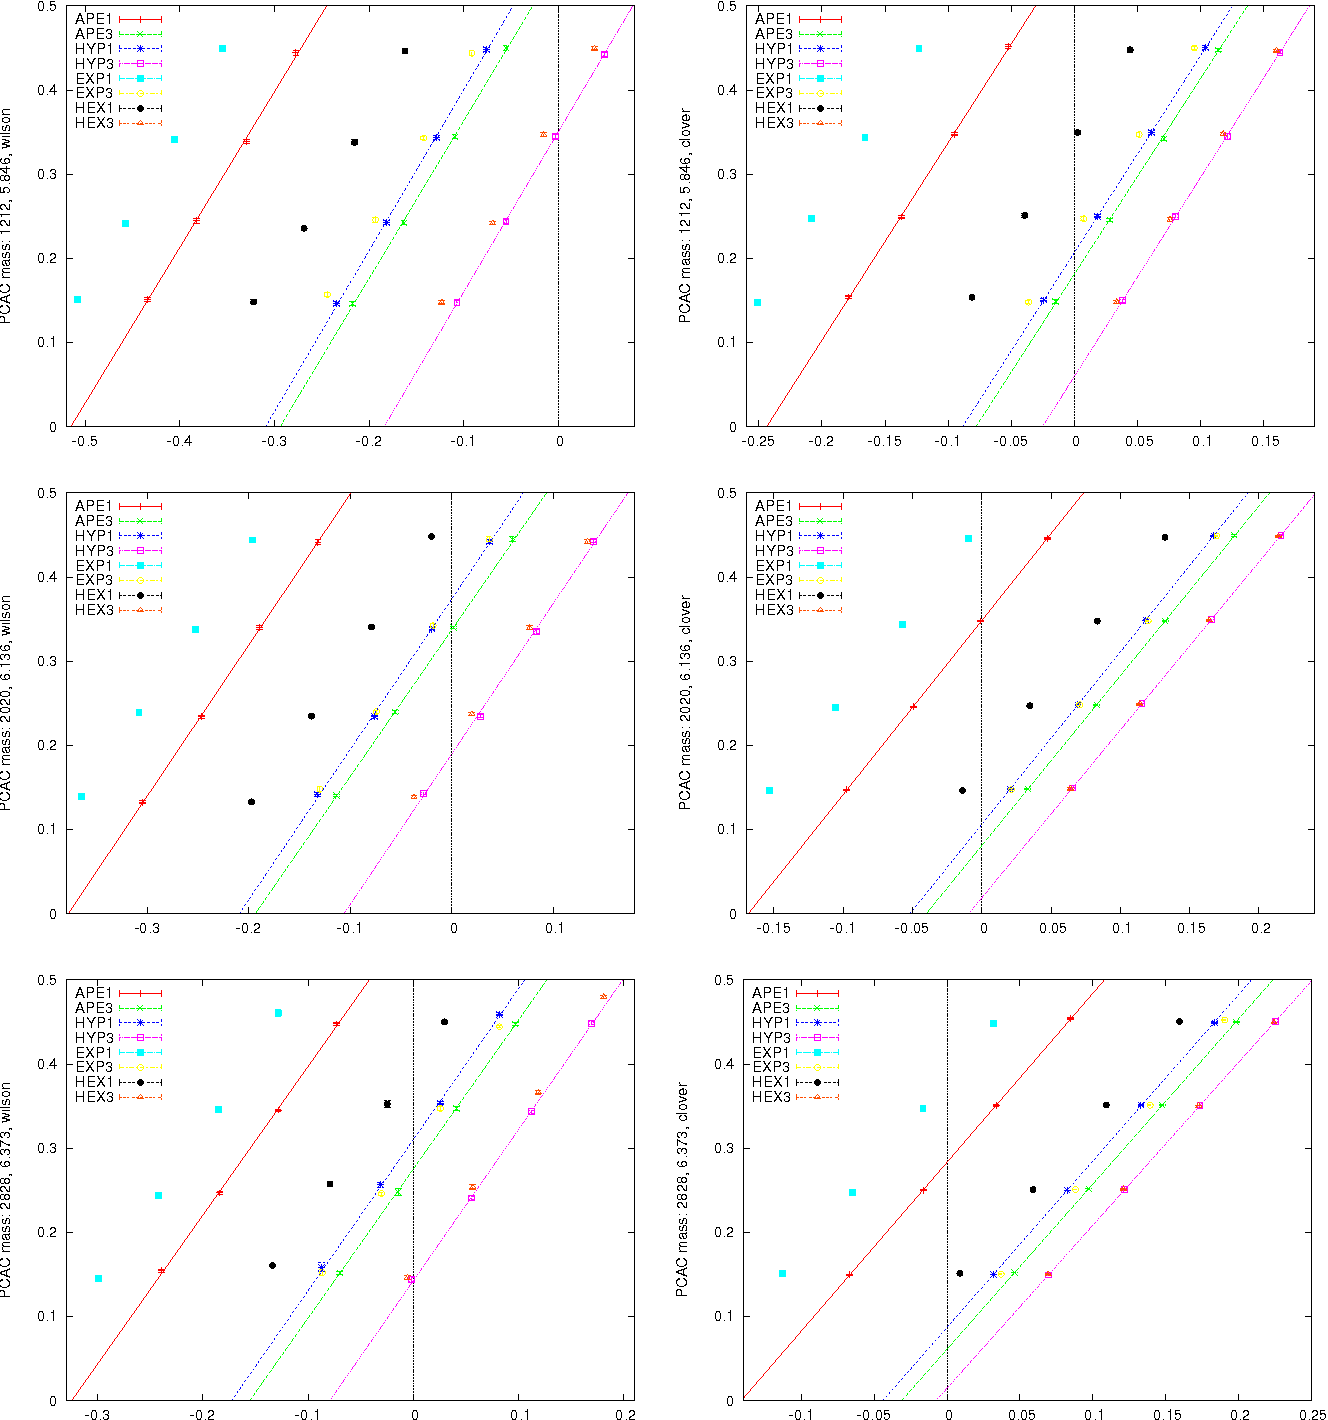 Figure 2: Our data for 2mPCAC vs. m0 with cSW=0 (left) and cSW=1 (right) at three couplings.